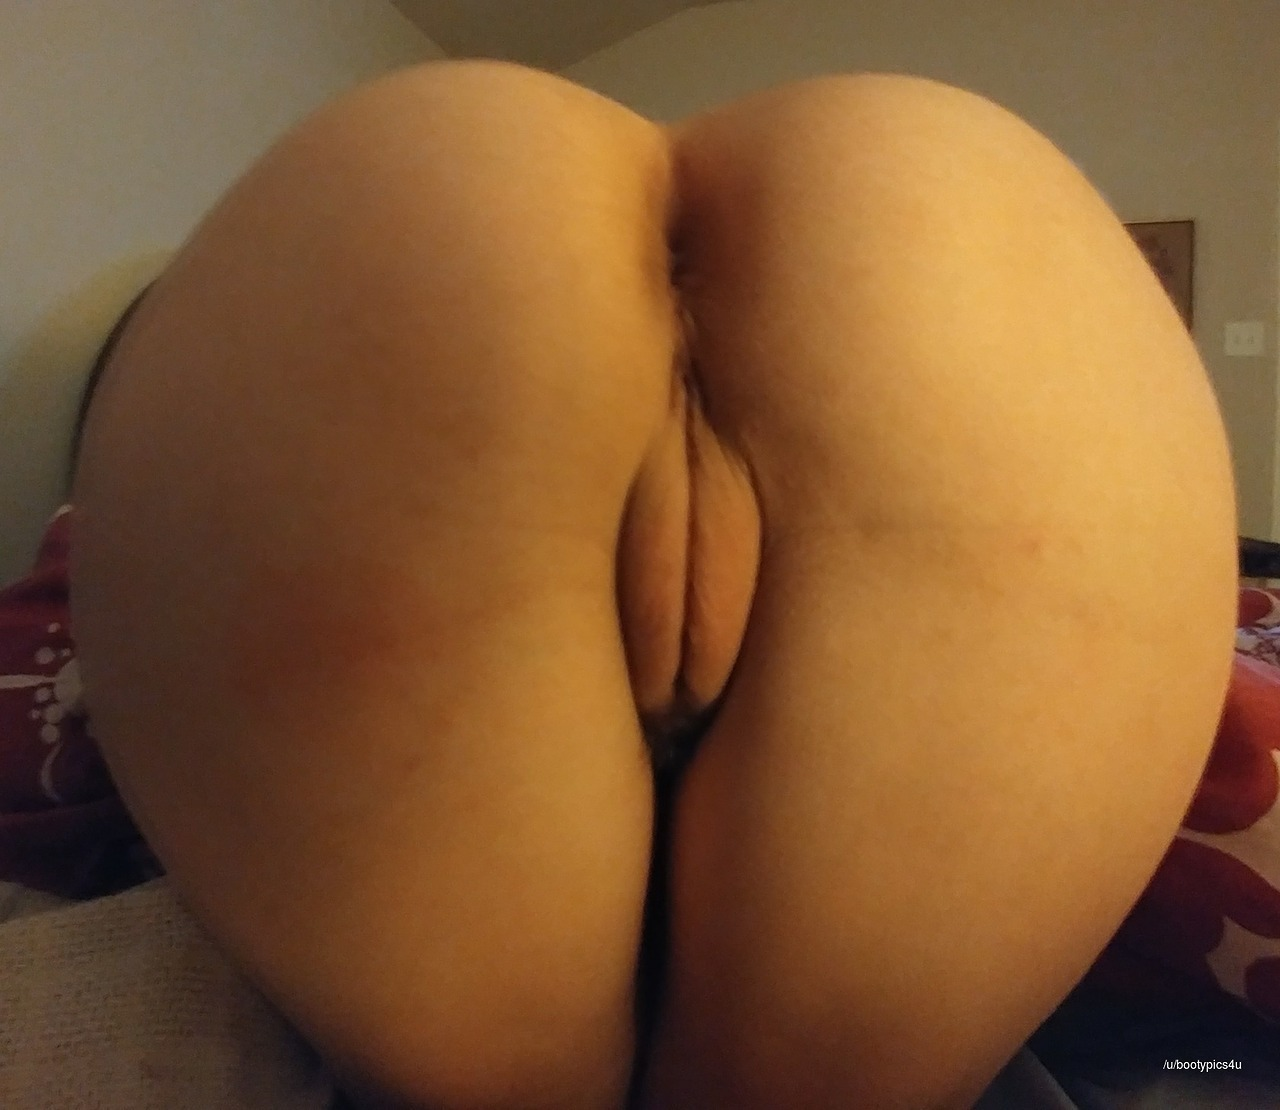 femdom wife amateur be more at com